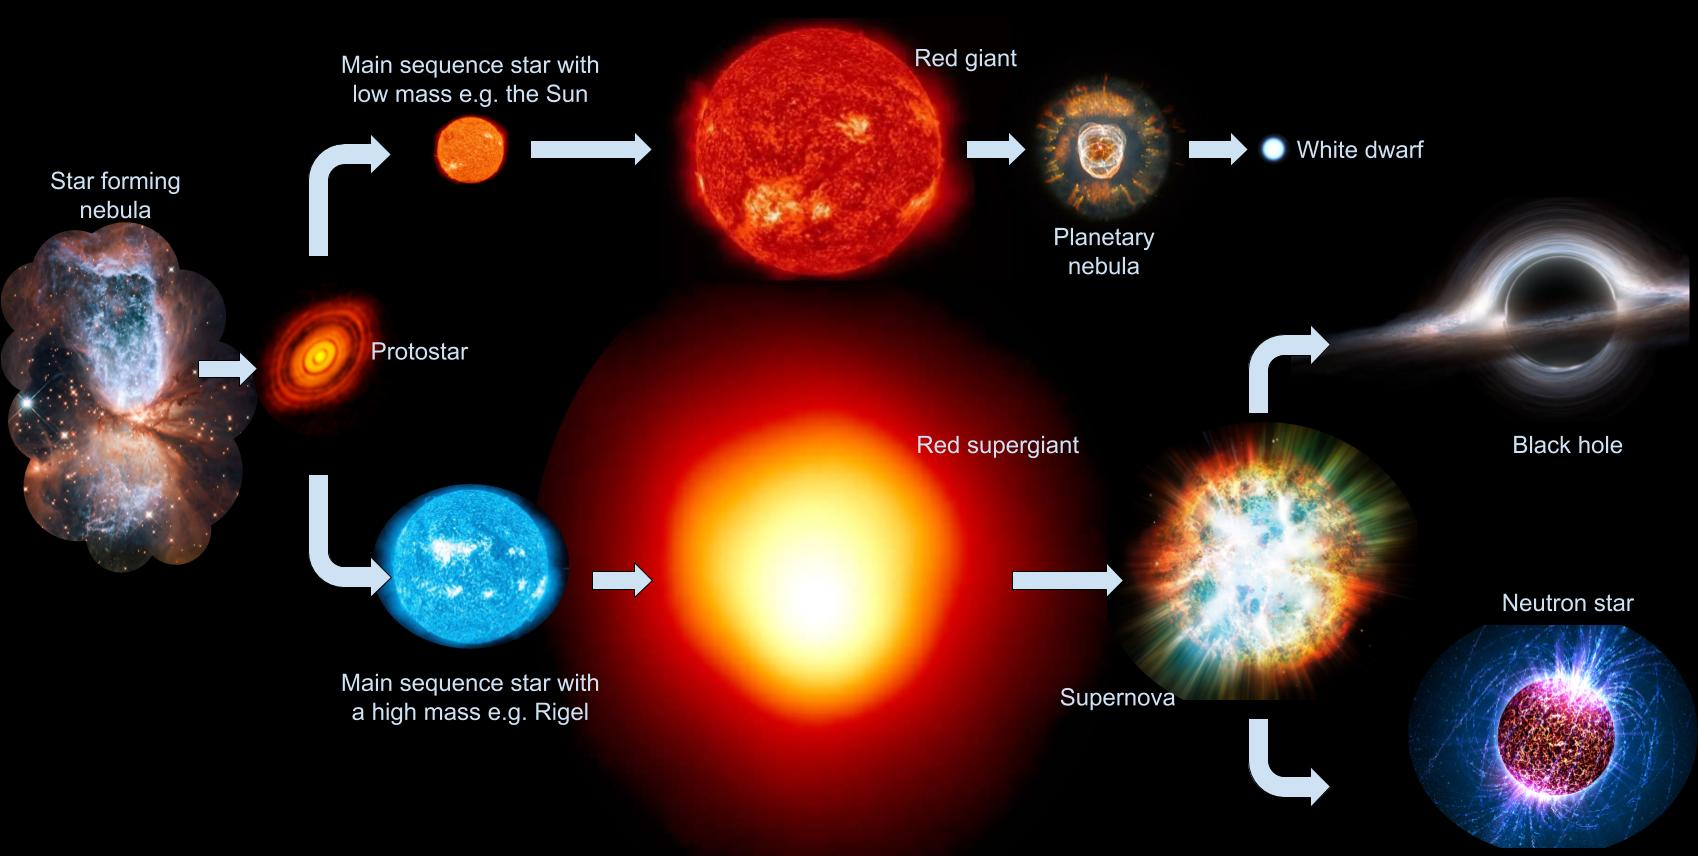 diagram of a low mass star life cycle john deere l120 automatic wiring mr toogood physics stars supernovae black holes